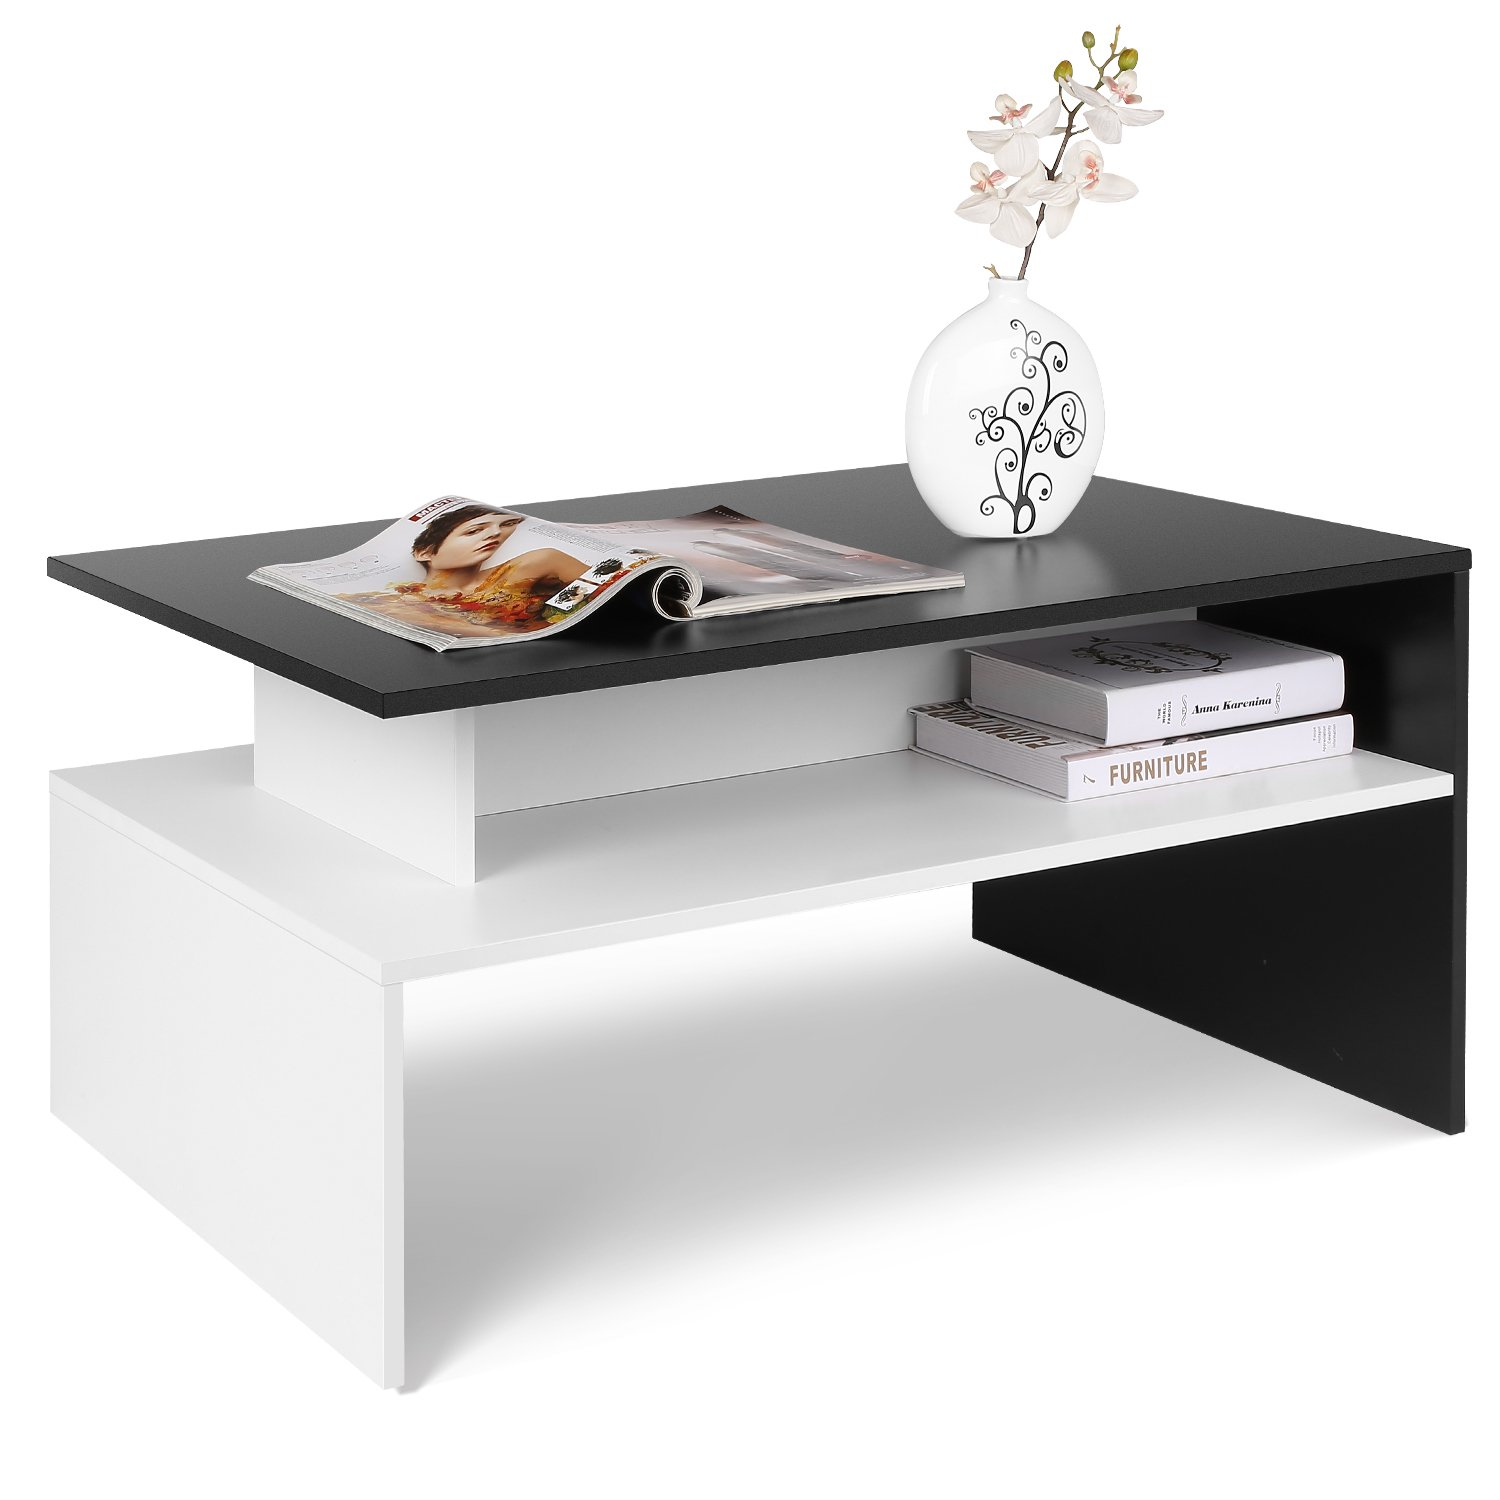 Homfa Coffee Table Side Table Living Room Home Furniture 2 Shelves Modern Storage Display Unit (Black+White) HF